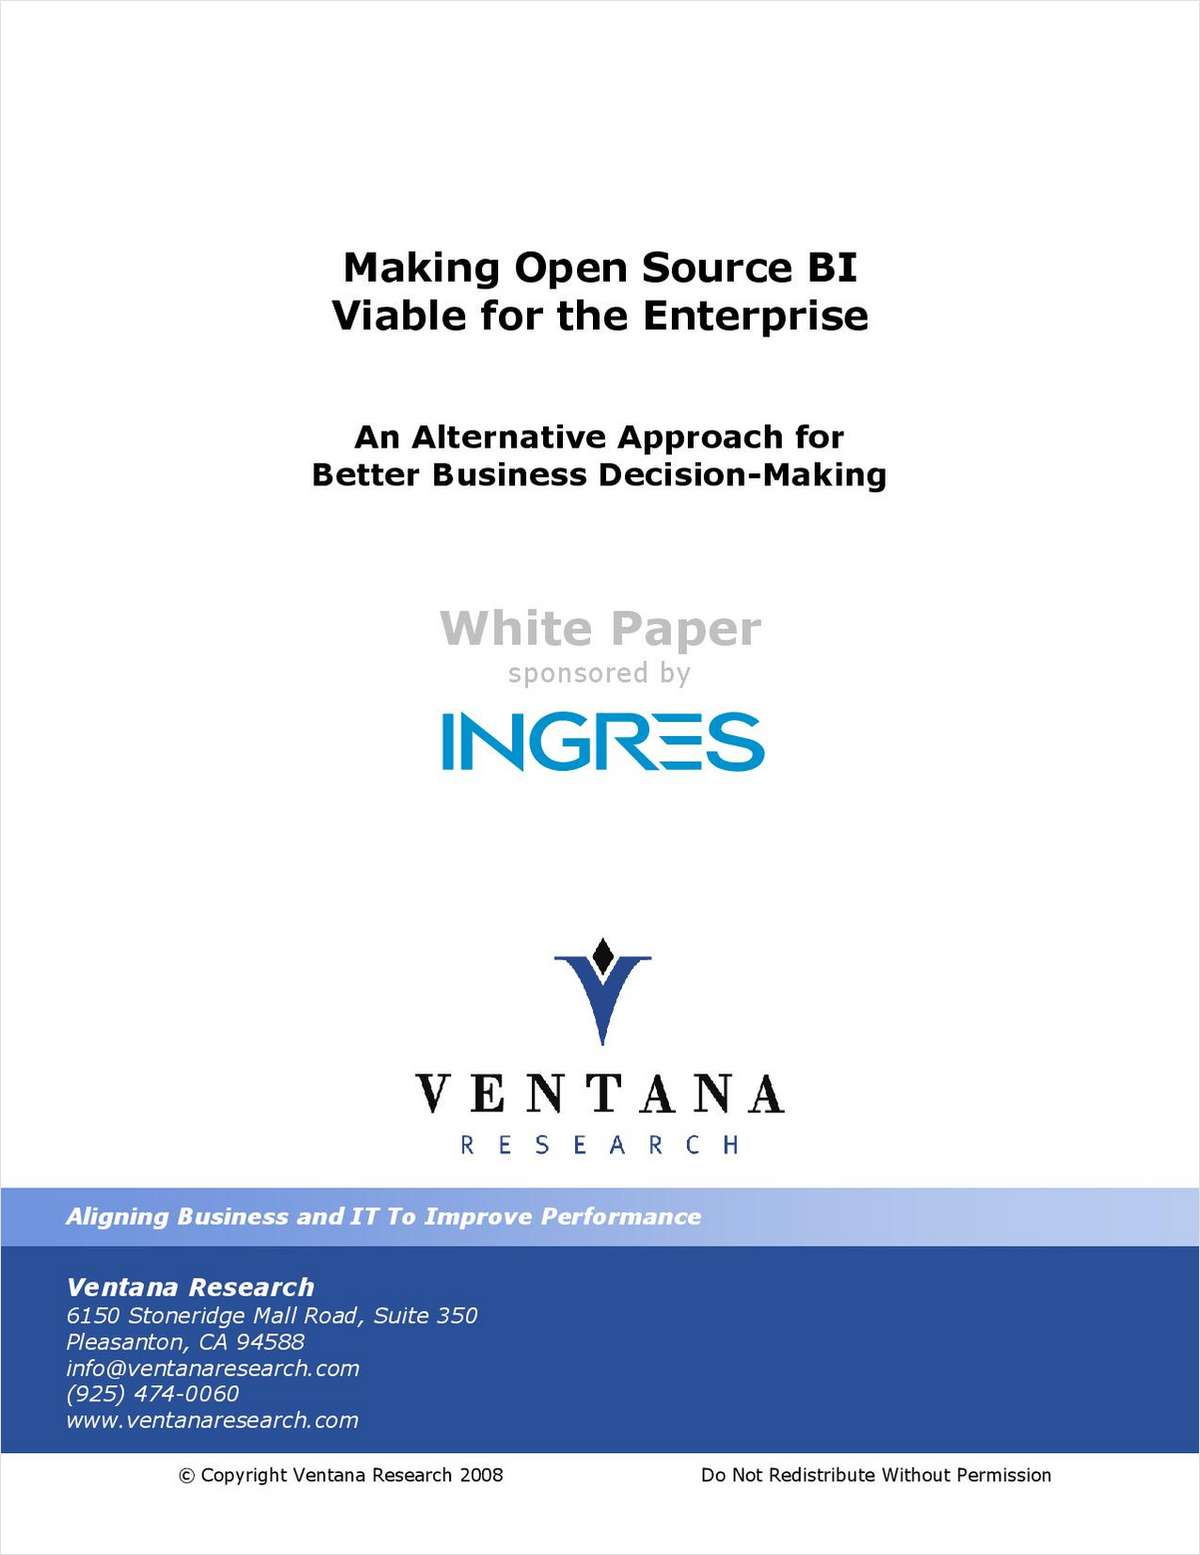 Making Open Source BI Viable for the Enterprise